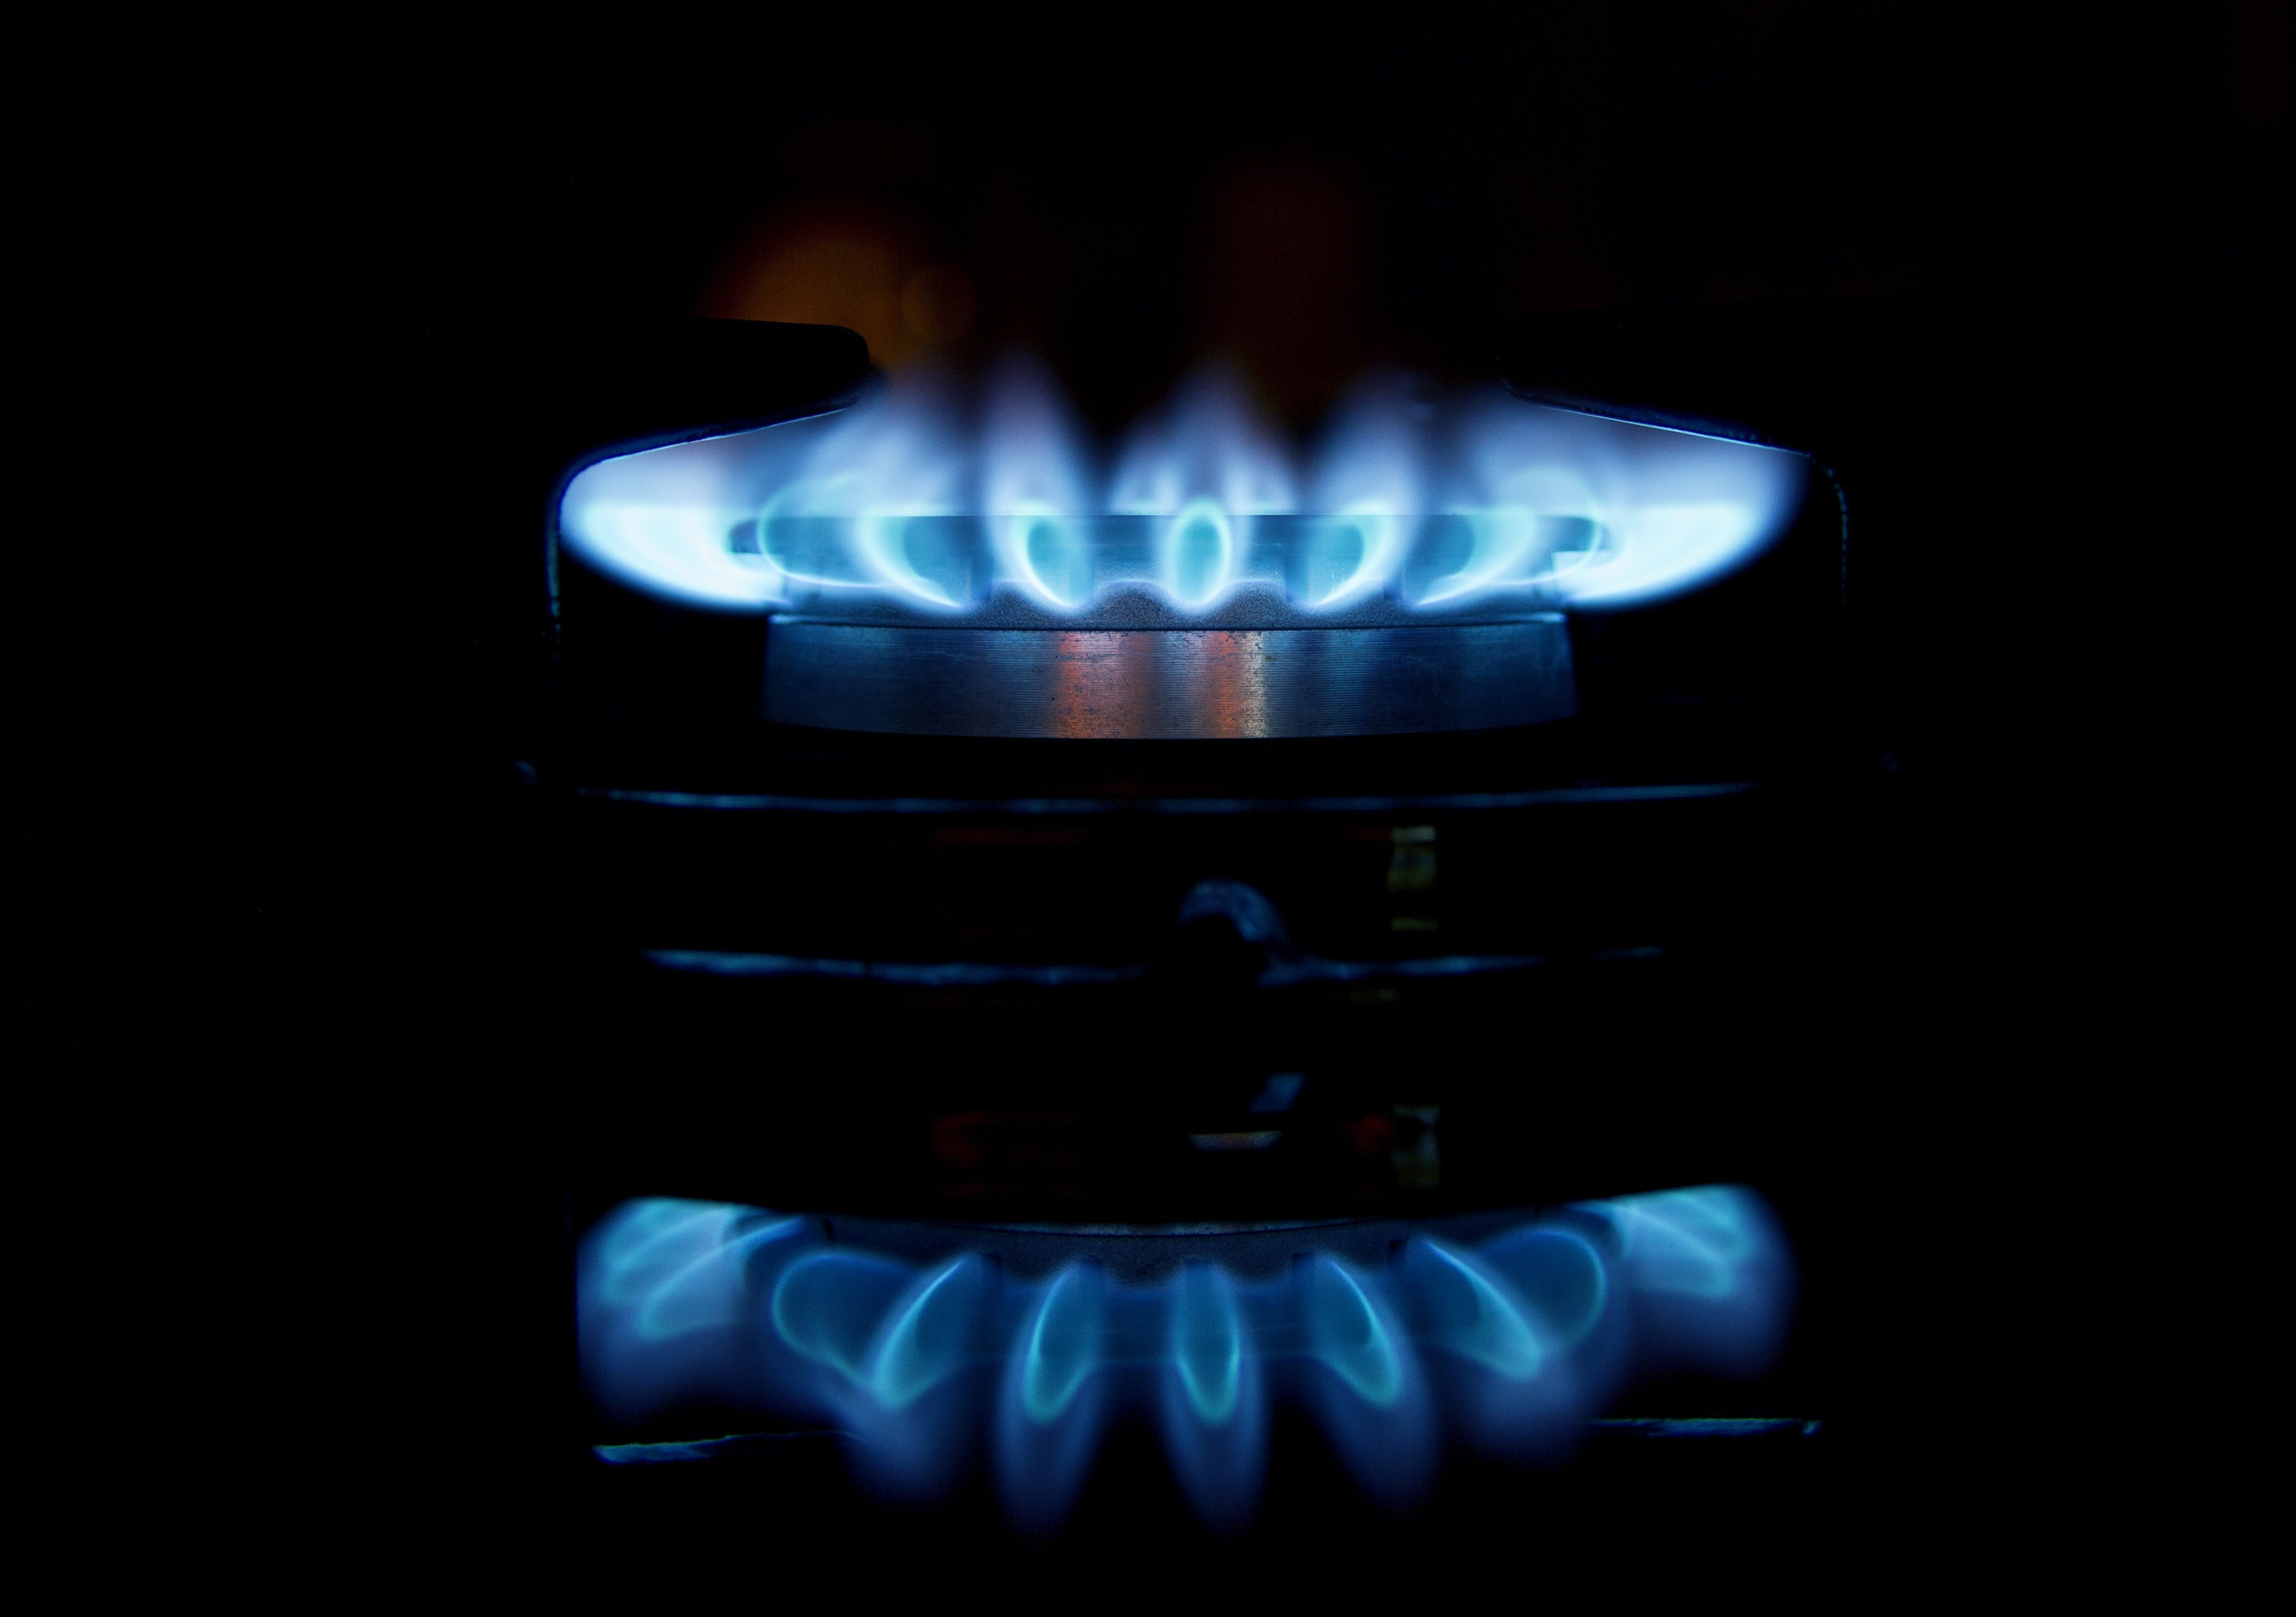 fire stove computer wallpaper 558